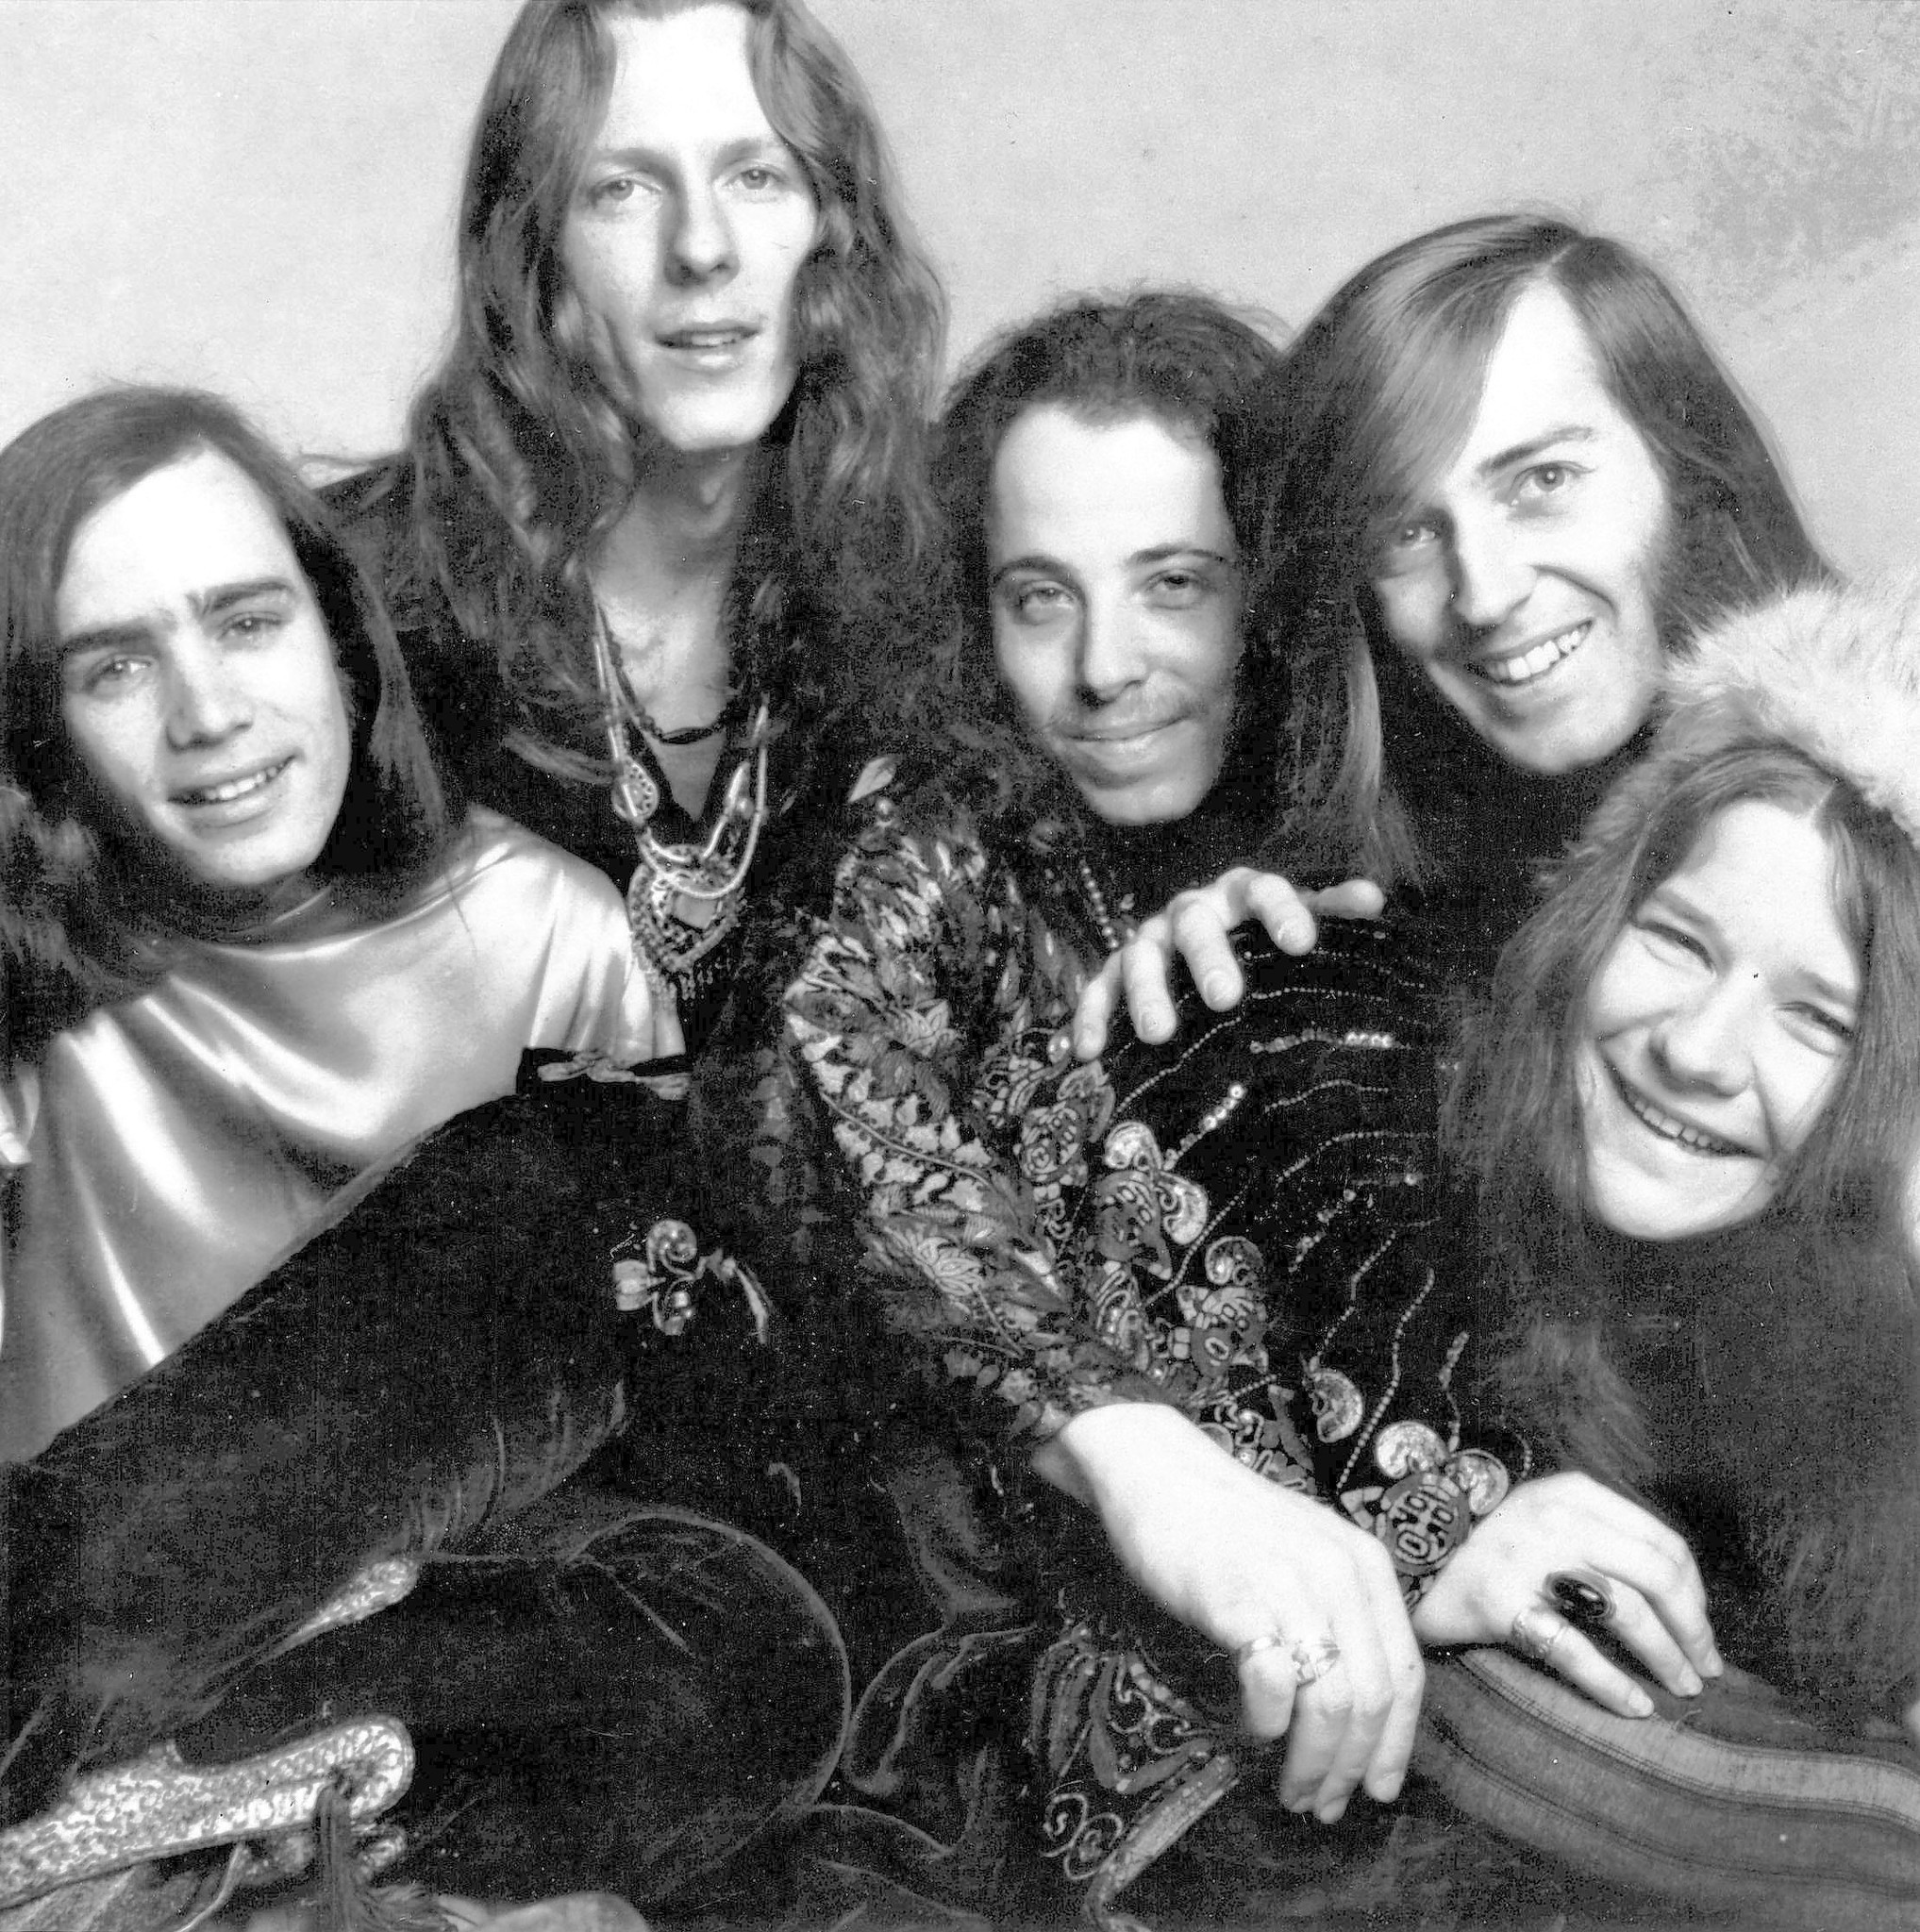 janis joplin essay Free janis joplin papers, essays, and research papers.